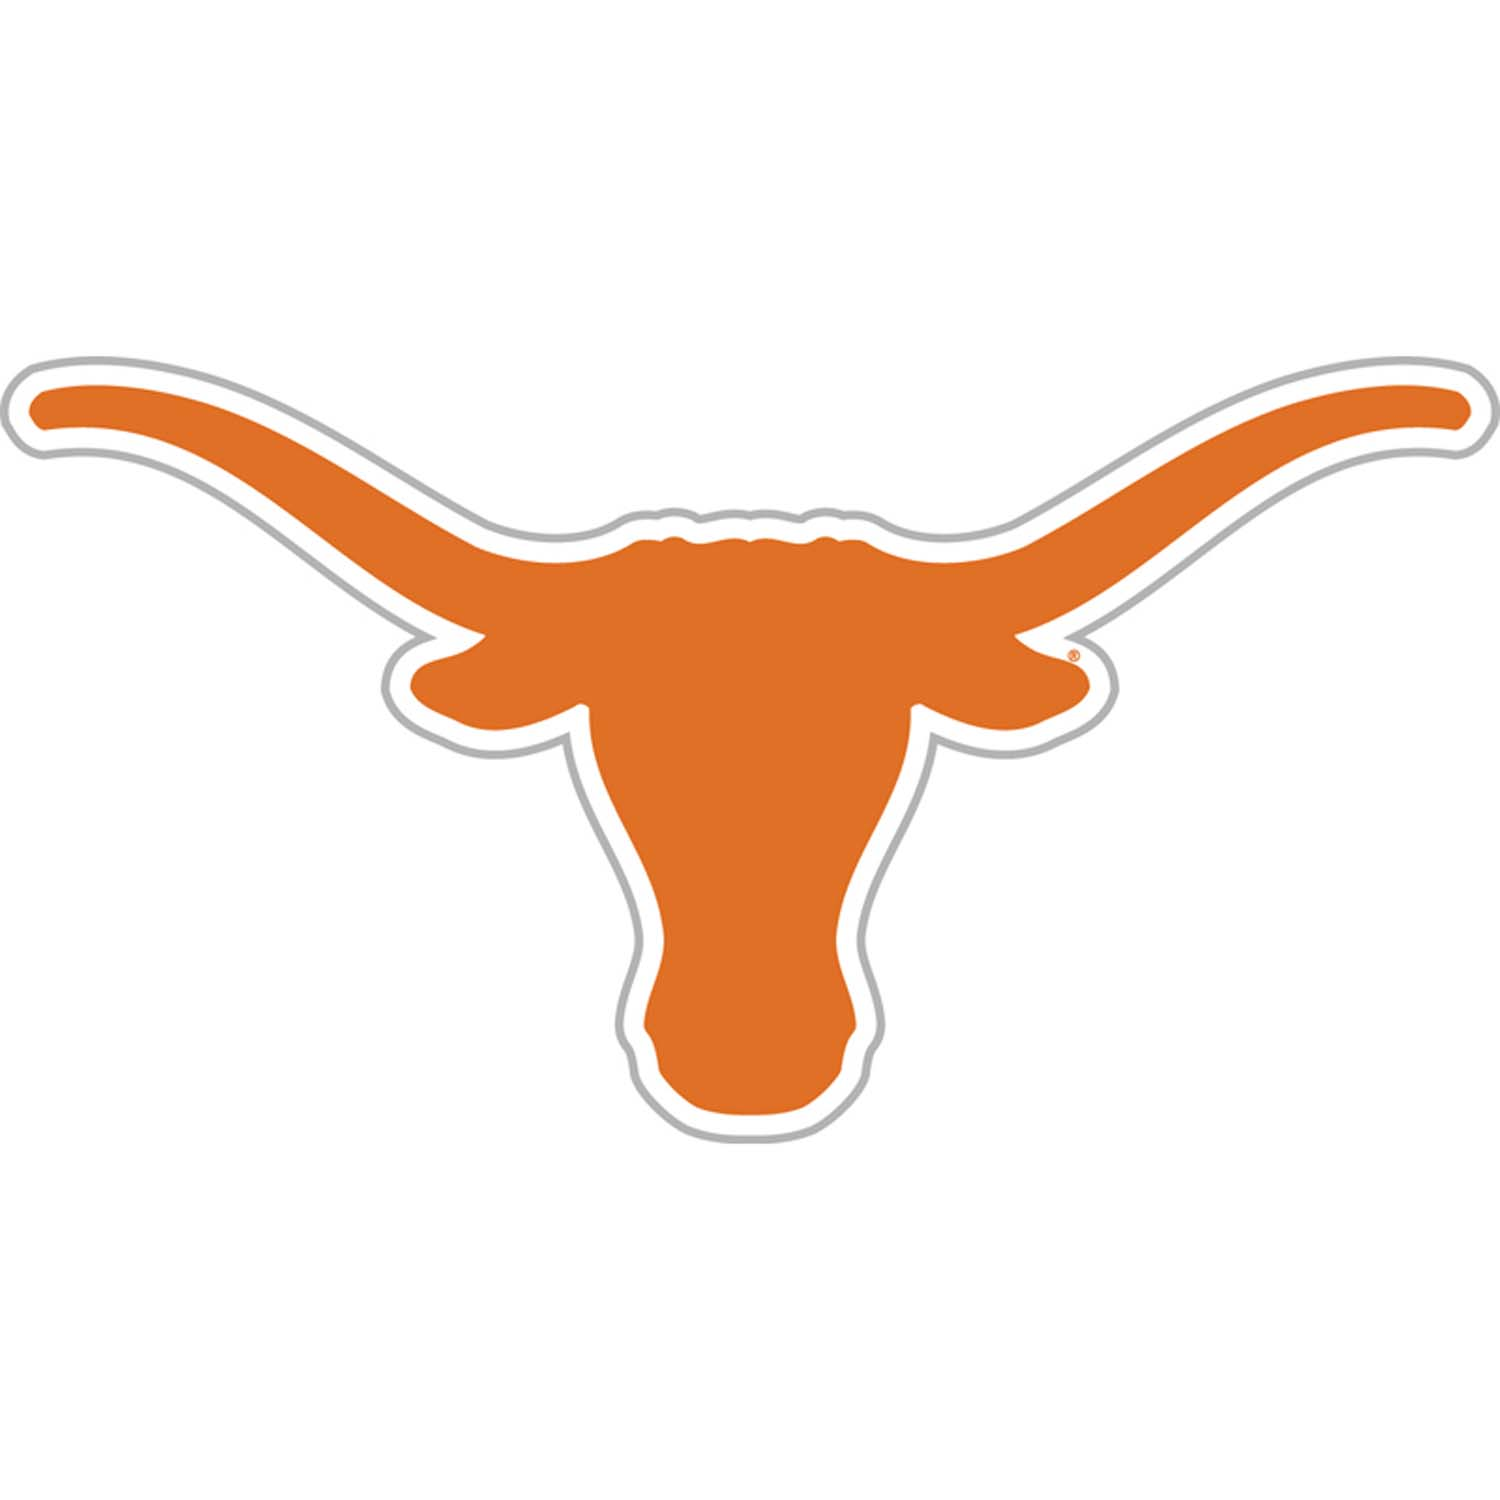 1500x1500 University Texas Longhorns Clipart